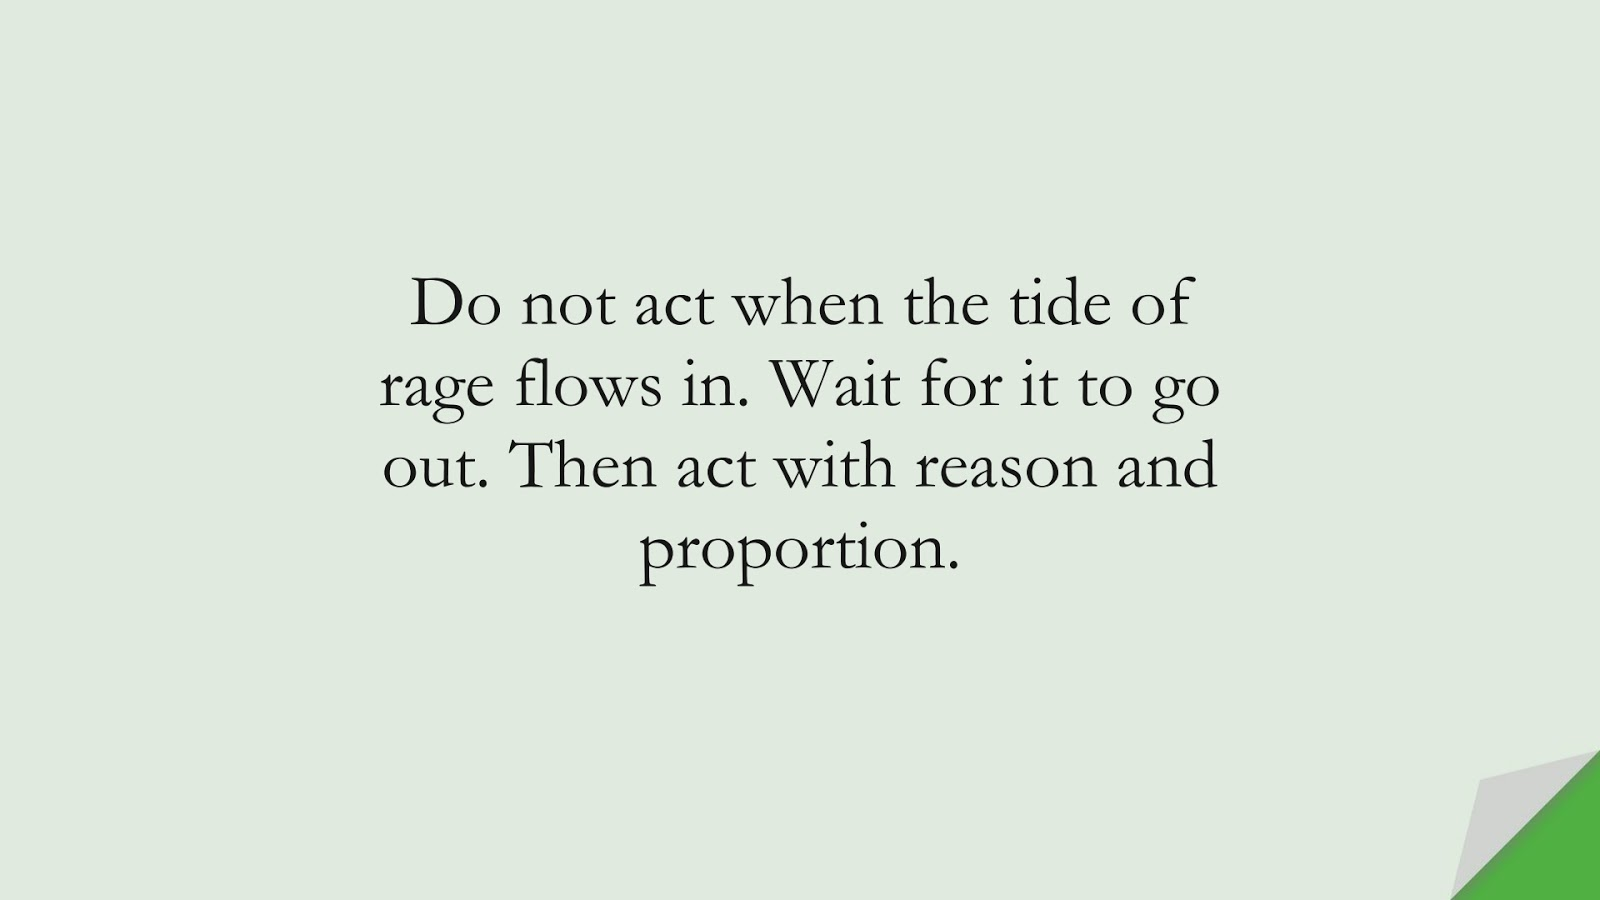 Do not act when the tide of rage flows in. Wait for it to go out. Then act with reason and proportion.FALSE